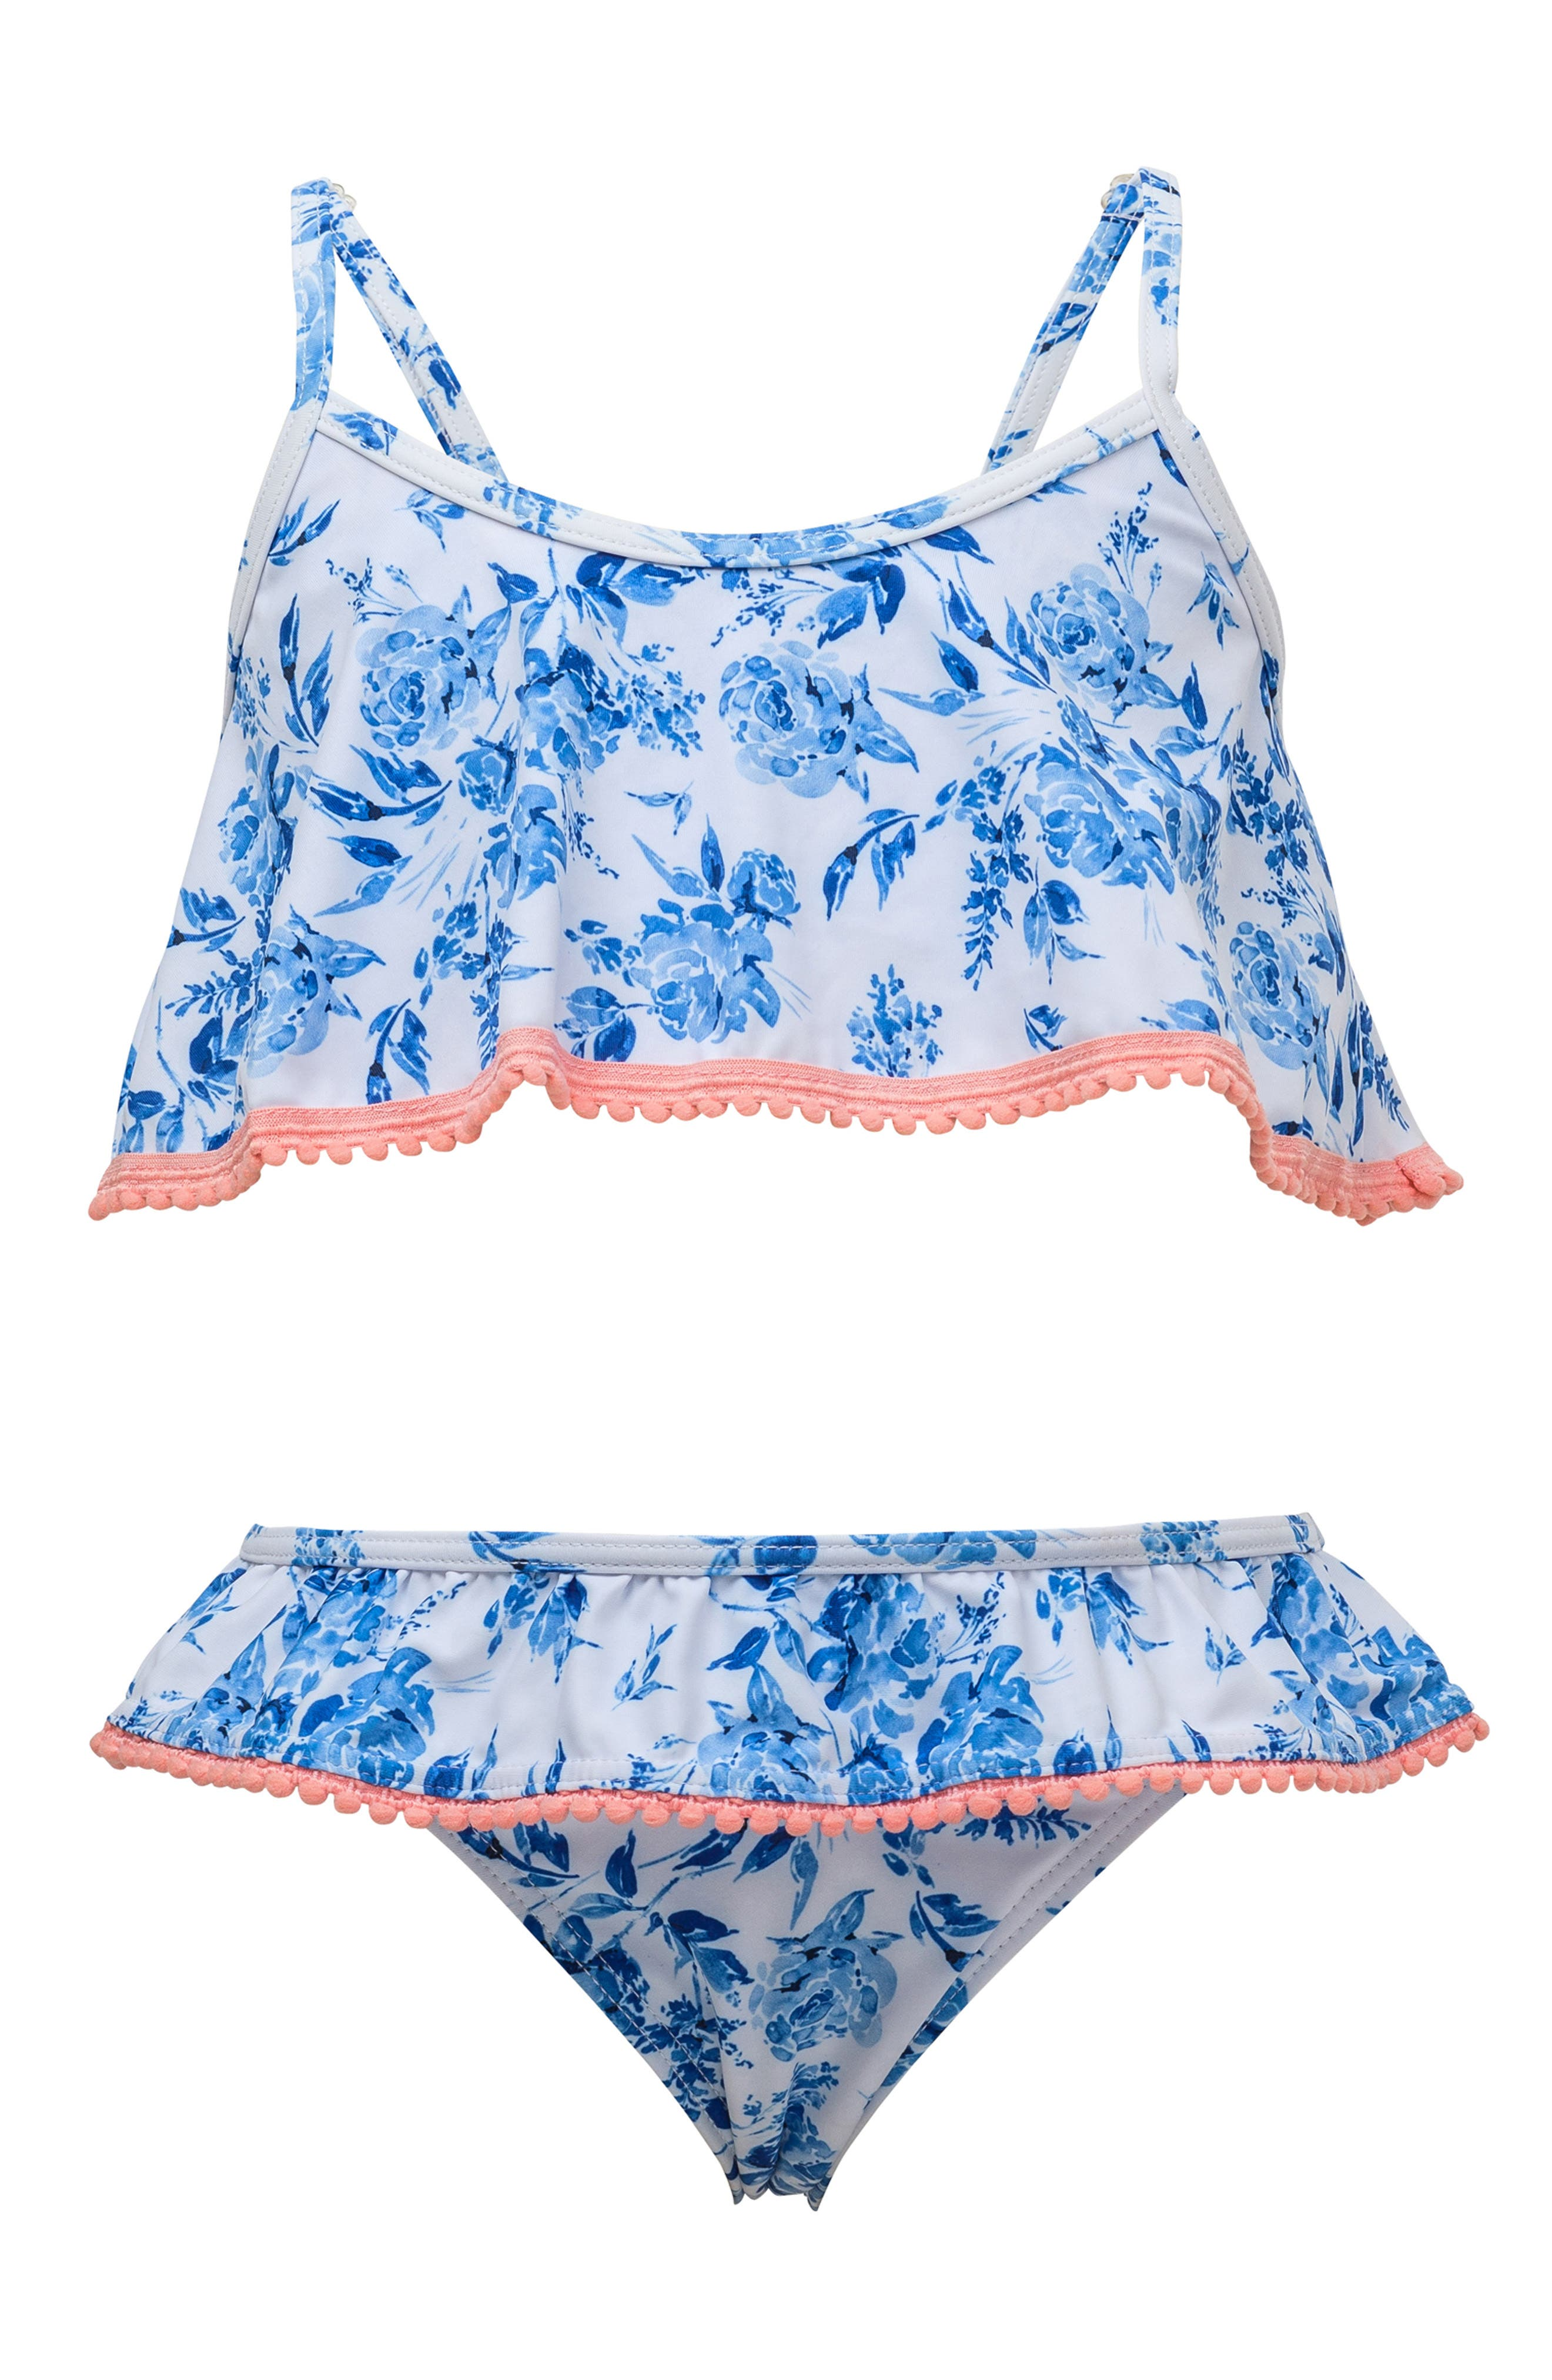 Flounce Two-Piece Swimsuit,                             Main thumbnail 1, color,                             BLUE WHITE FLORAL